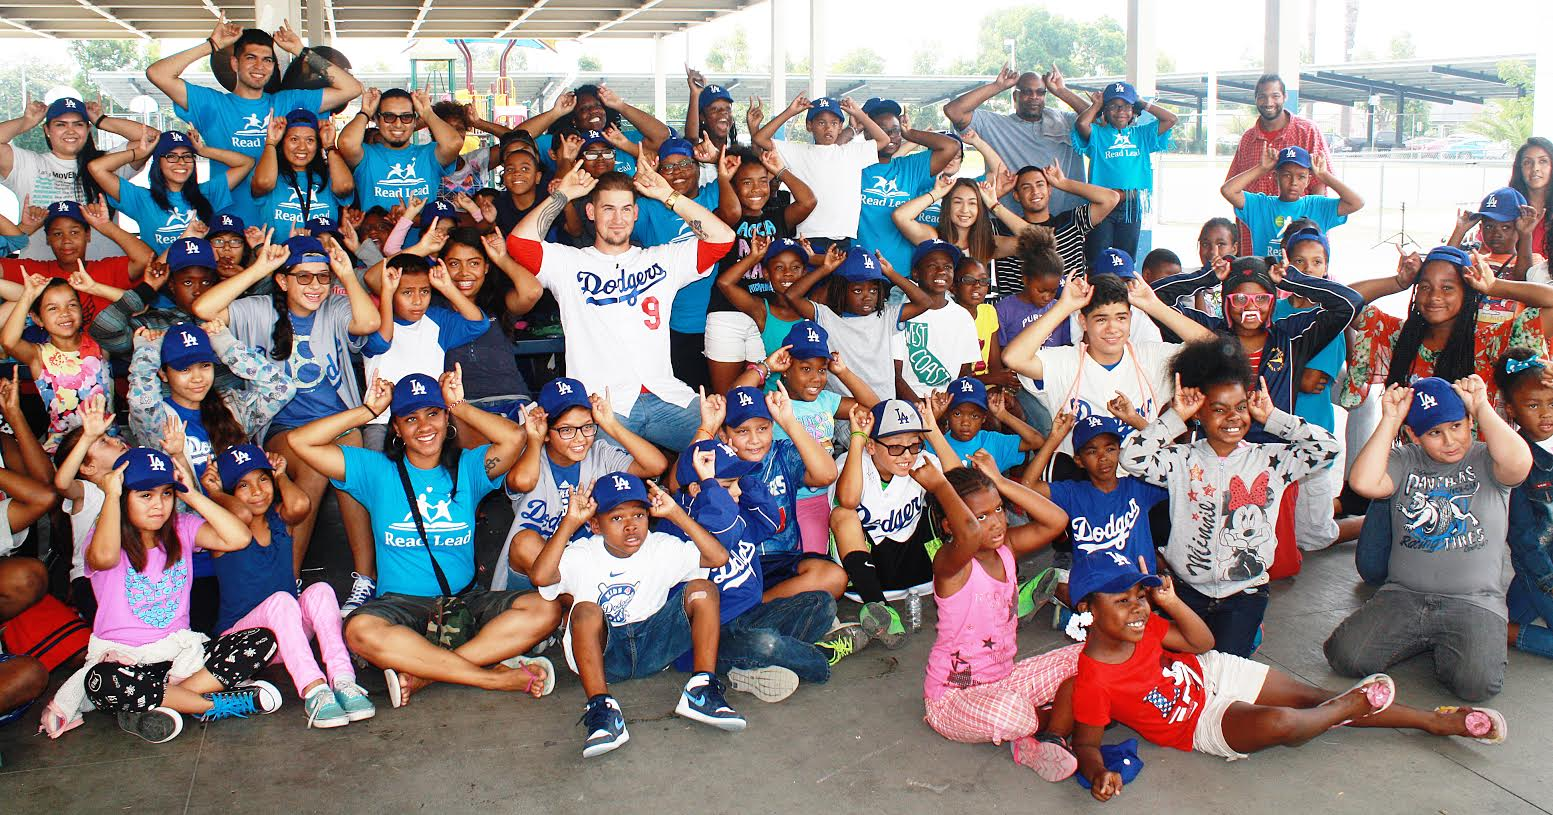 """More than 100 students at Lynwood Unified's Helen Keller Elementary School sit with Dodgers catcher Yasmani Grandal on Friday, July 31. The students are all posing with horns in honor of Grandal who is nicknamed """"Tasmanian Devil."""""""